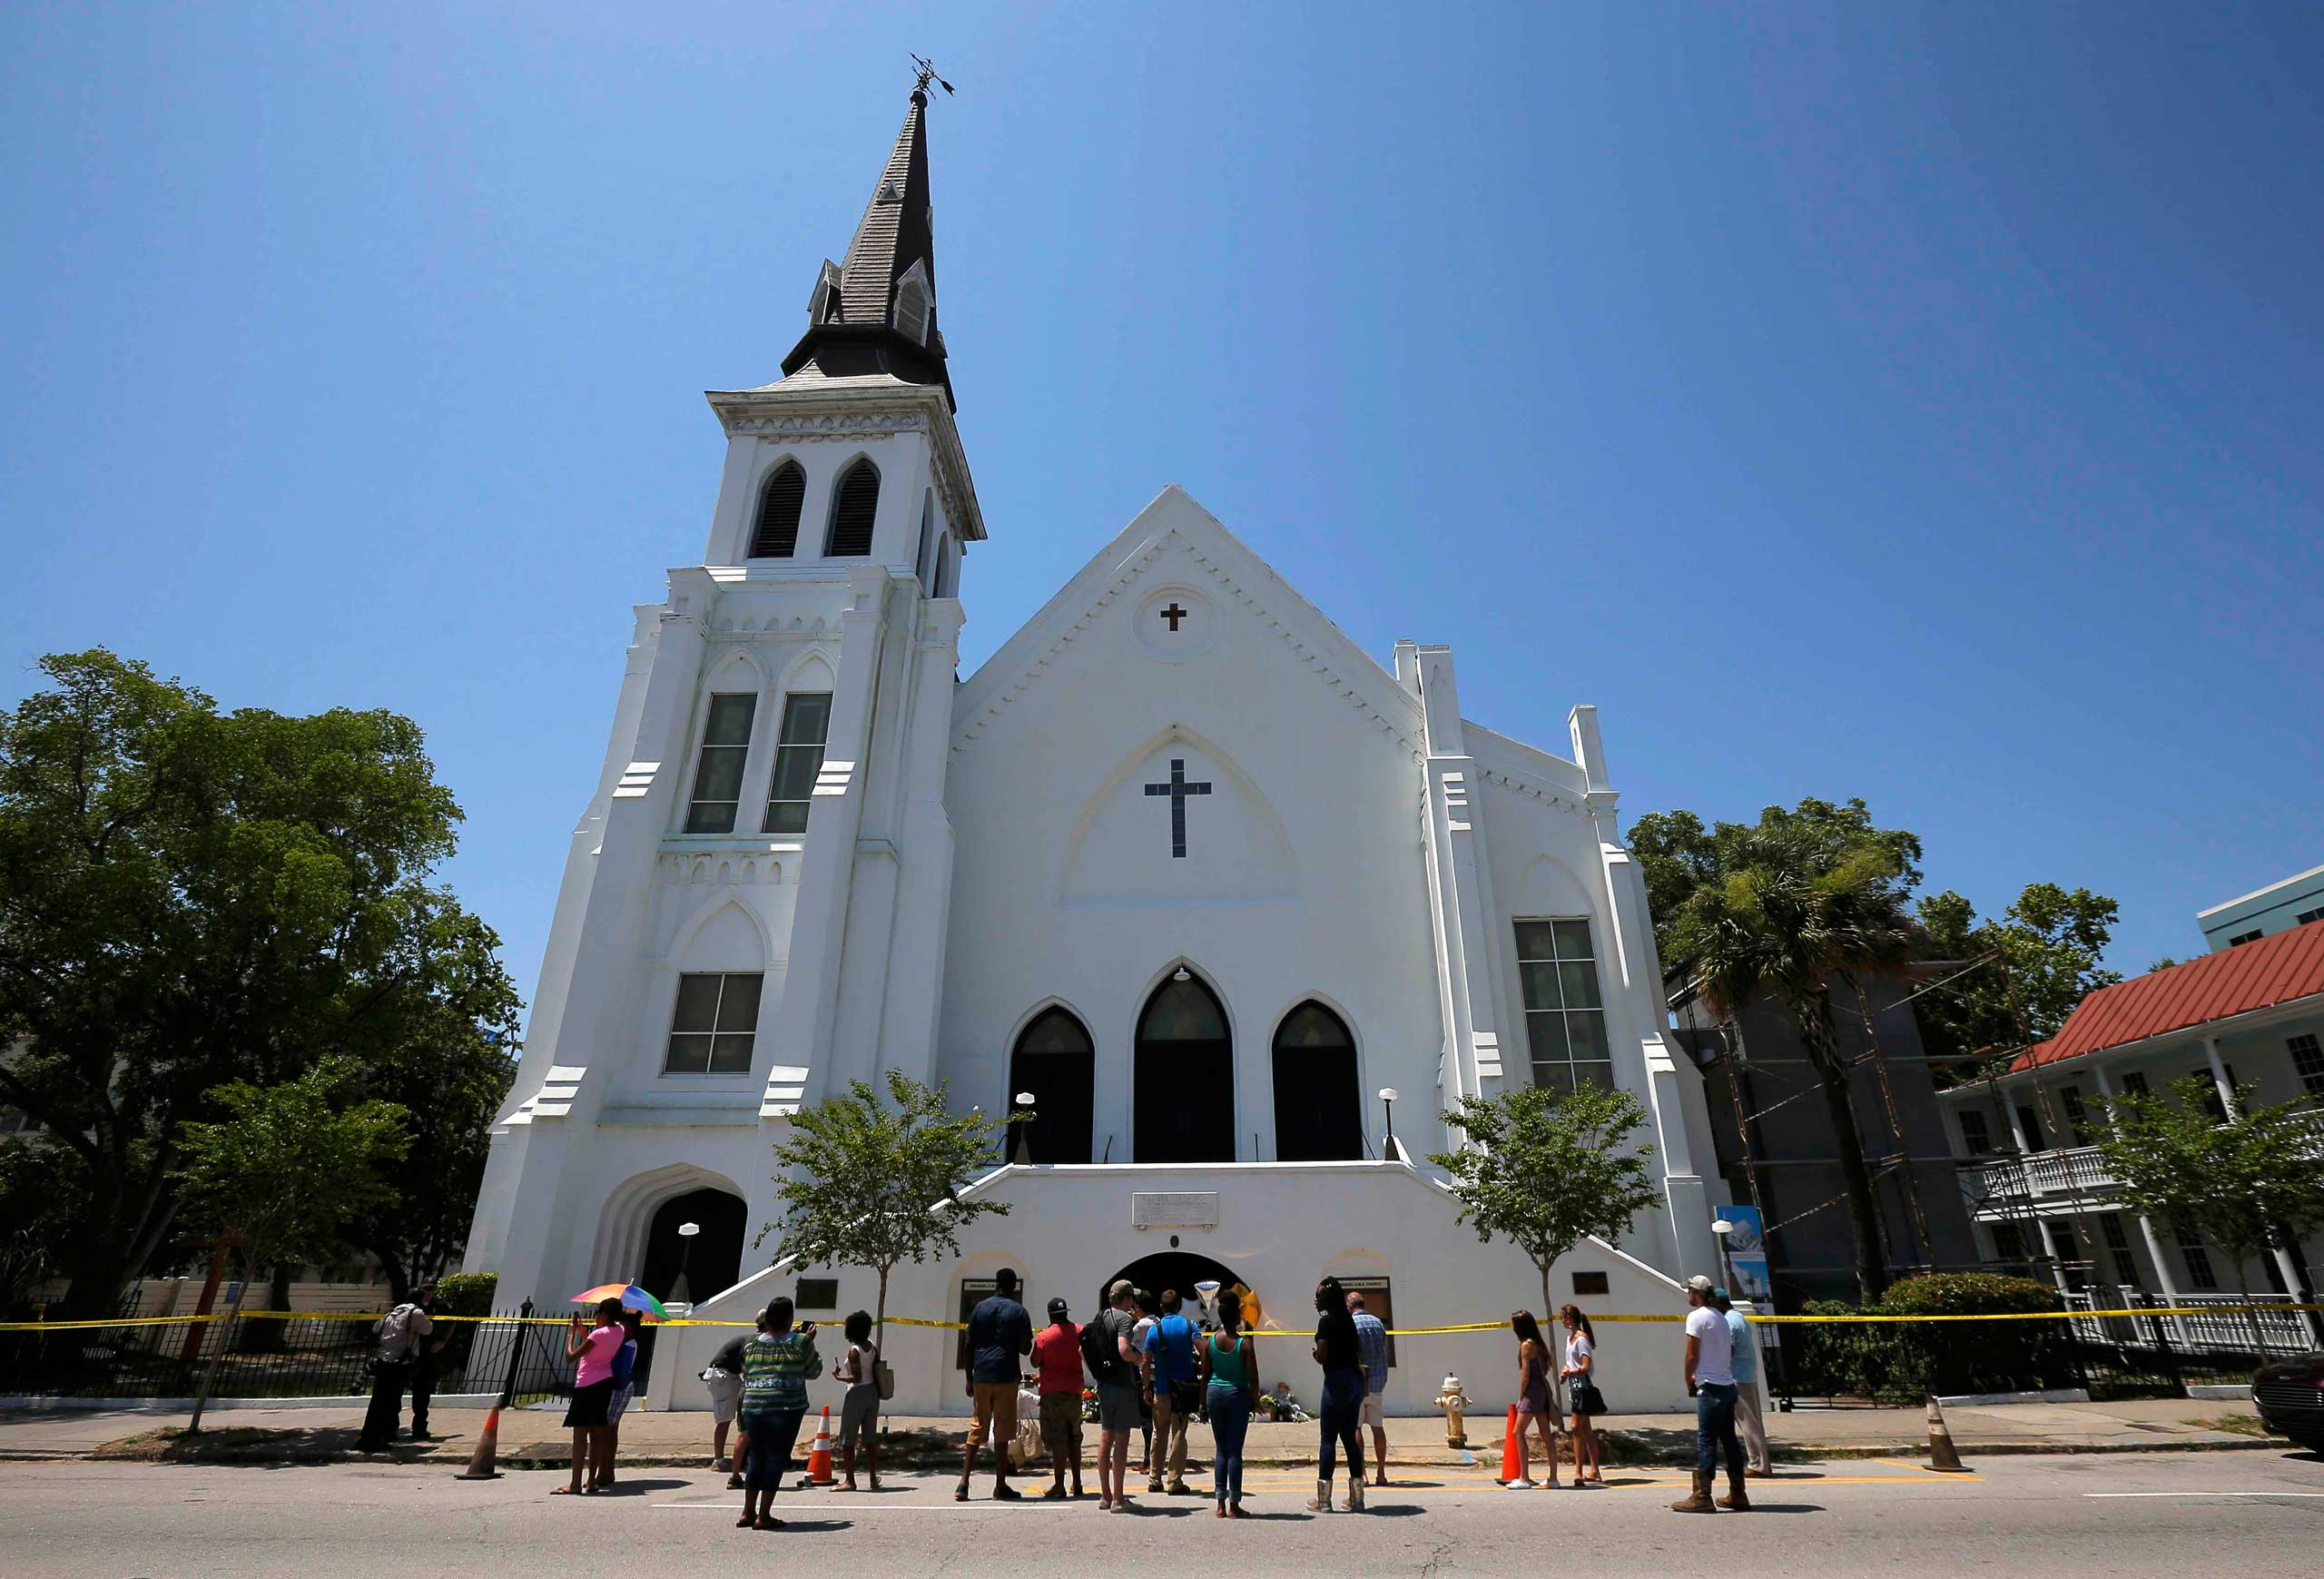 People gather outside Emanuel African Methodist Episcopal Church after the street was re-opened a day after a mass shooting left nine dead during a bible study at the church in Charleston, S.C., on June 18, 2015.